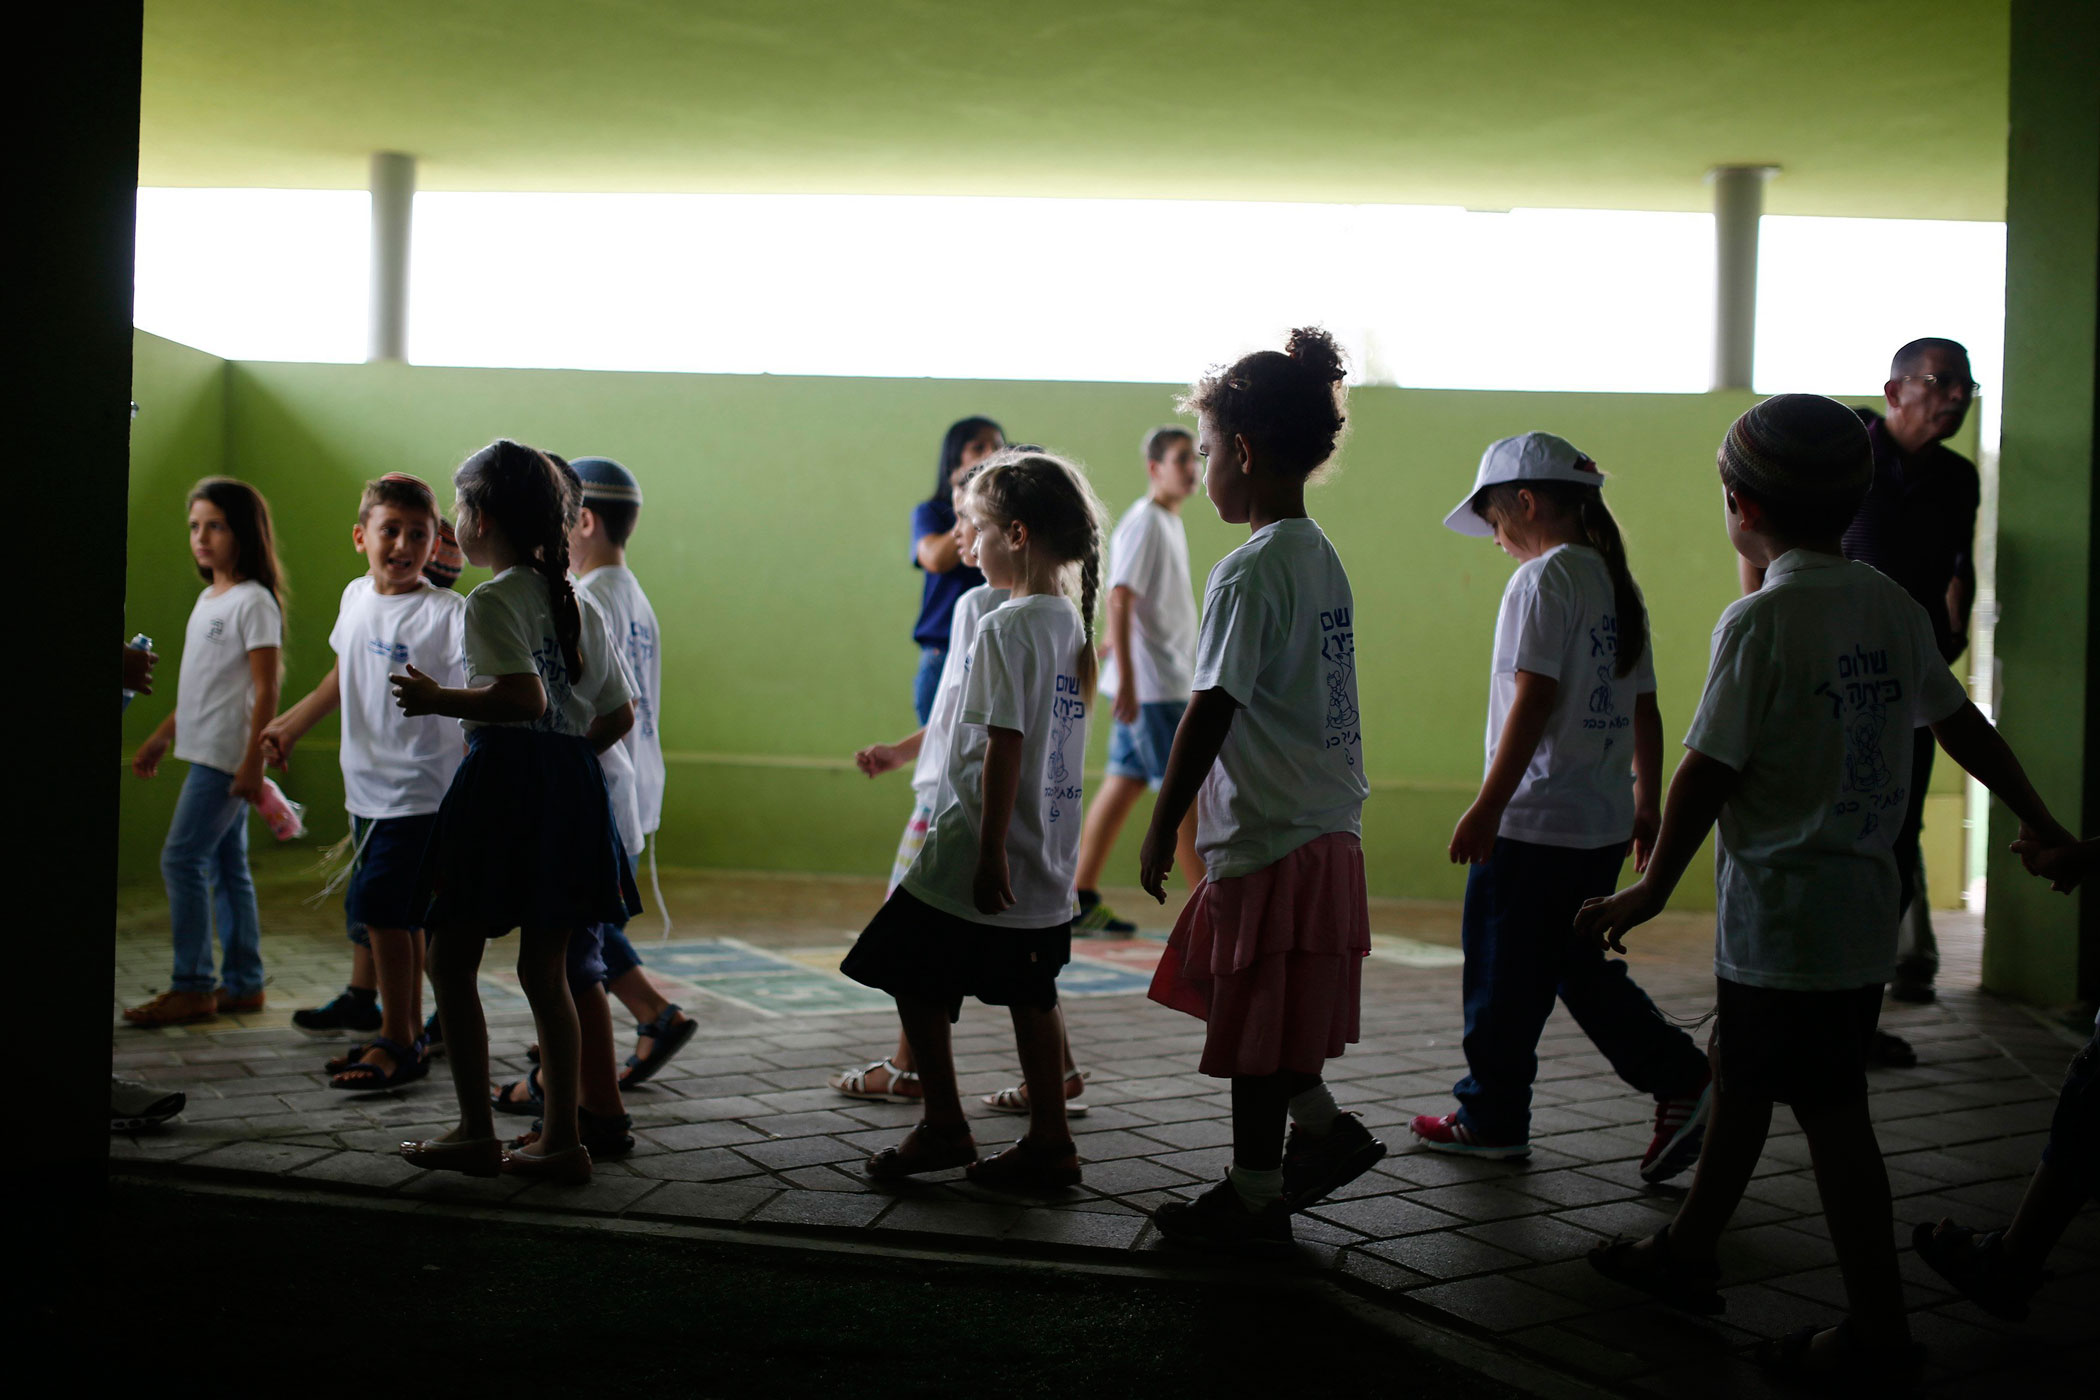 Israeli children walk in a school which is reinforced against rocket and mortar attacks, on the first day of the school year in Kibbutz Saad, outside the Gaza Strip on Sept. 1, 2014.